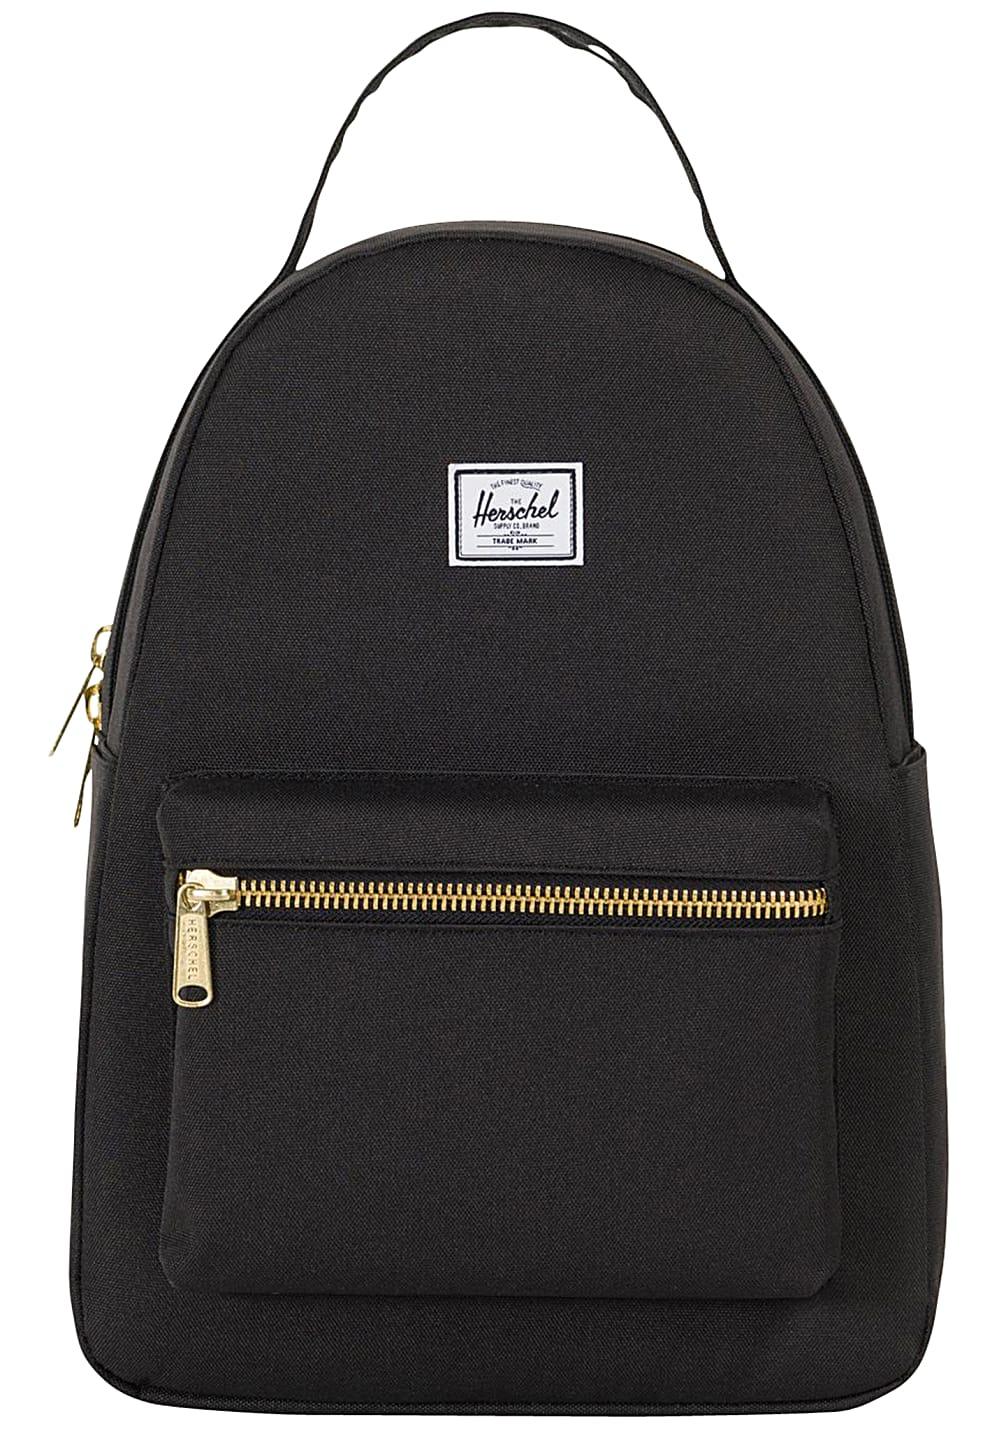 Herschel Supply Femme Nova Co Pour Noir Dos Sac 14l Small À AL4j3cR5q